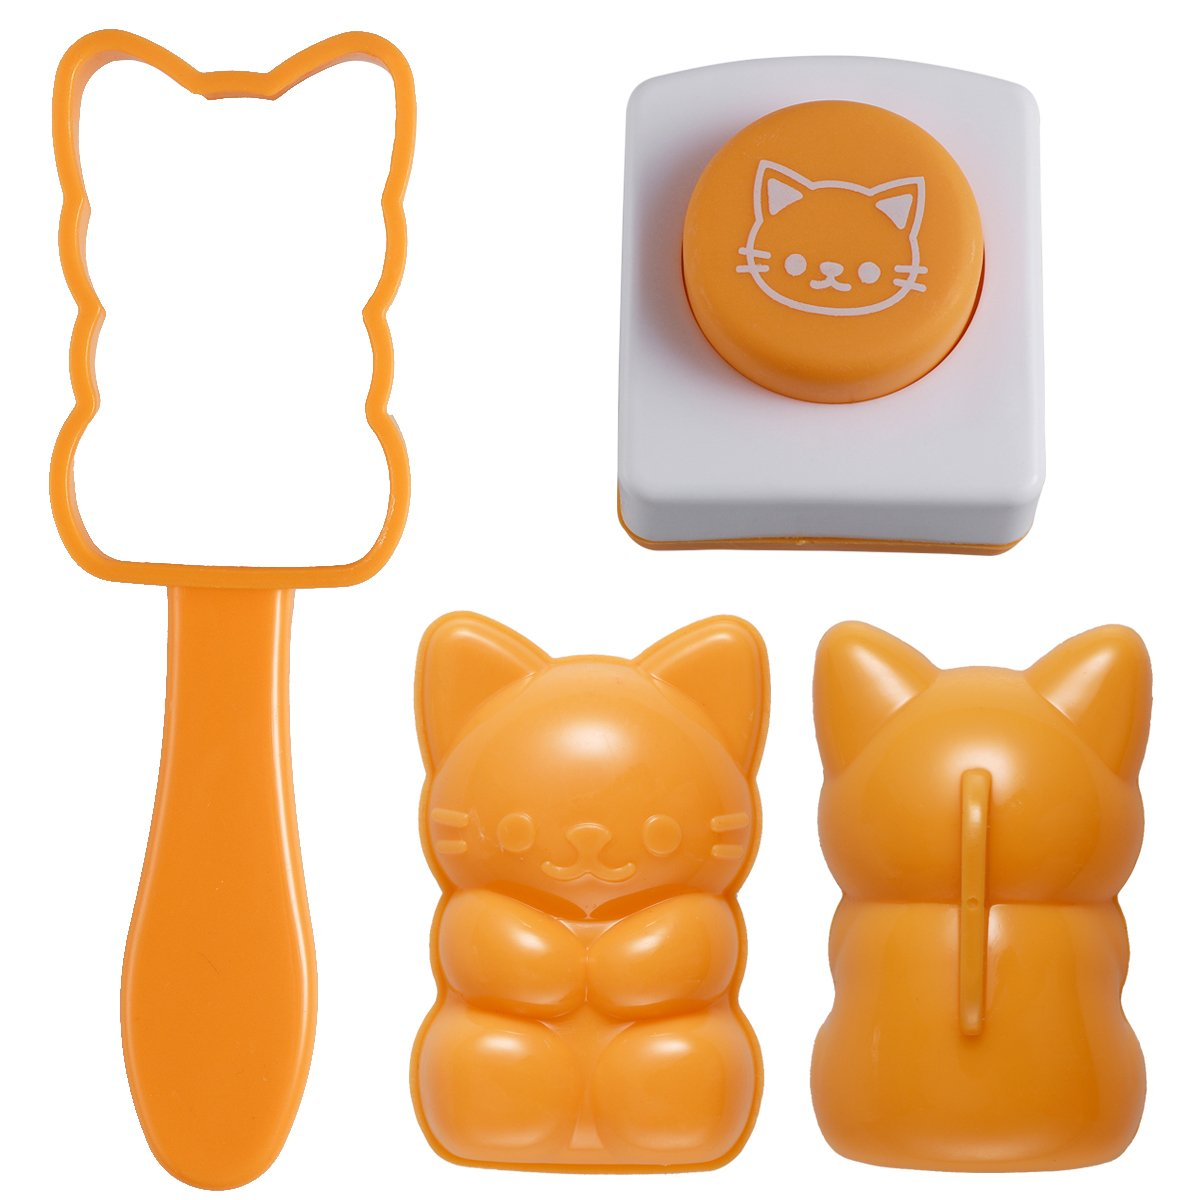 OUNONA Rice Mold Onigiri Maker Shaper Mold Cat Shape Sushi Mould with Roasted Seaweed Embossers DIY Kitchen Tool Set